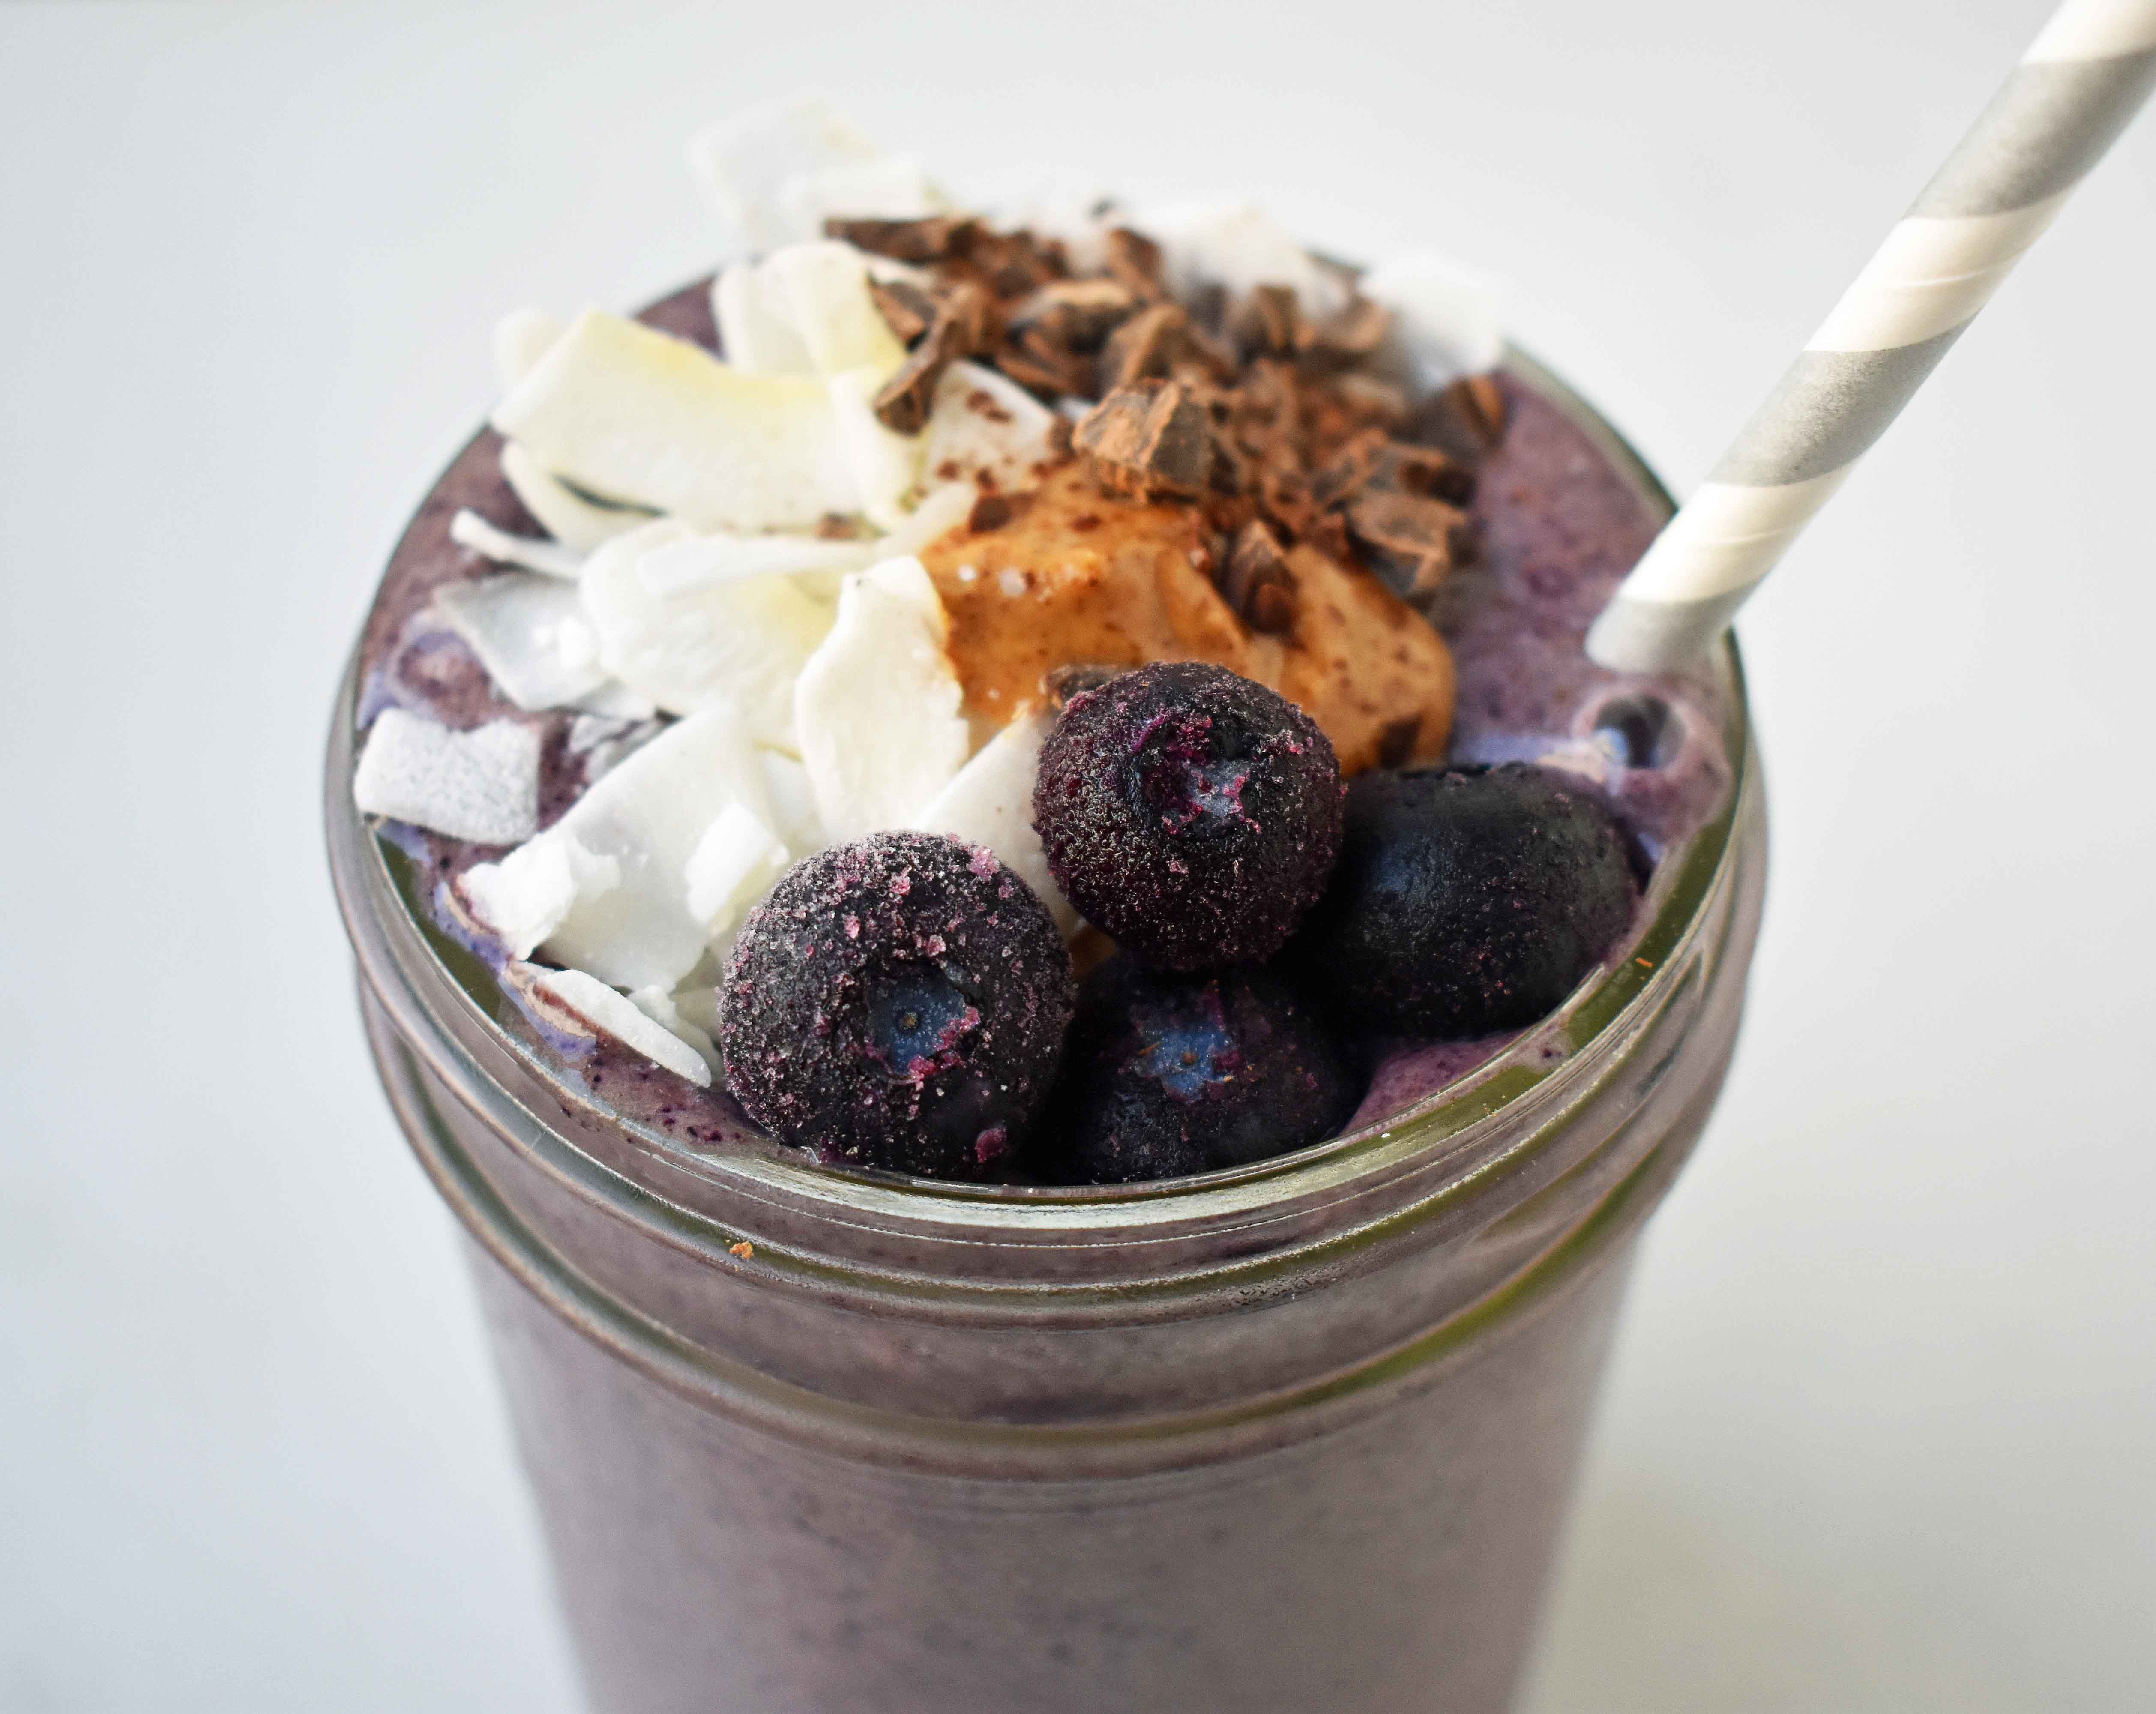 Wild Blueberry Chocolate Coconut Smoothie. Made with chocolate protein powder, coconut milk, blueberries, almond butter, banana, cacao powder. Topped with blueberries, almond butter, and dark chocolate shavings. A craveworthy chocolate coconut protein shake packed with nutrition. www.modernhoney.com